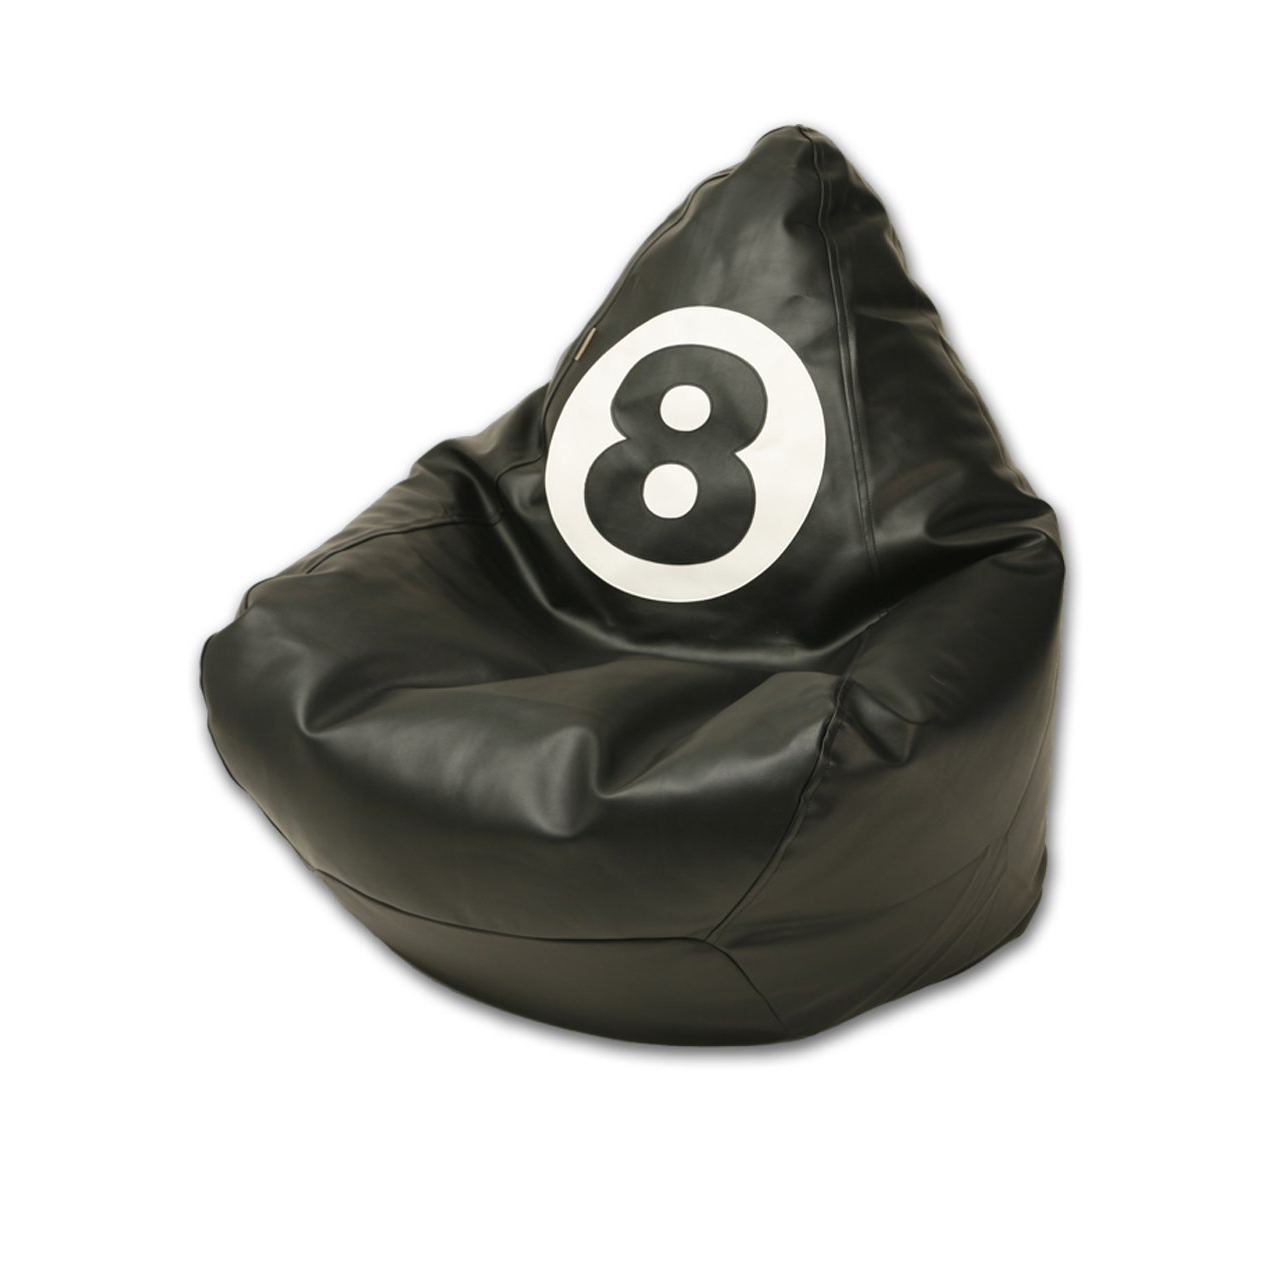 8-Ball Bean Bag